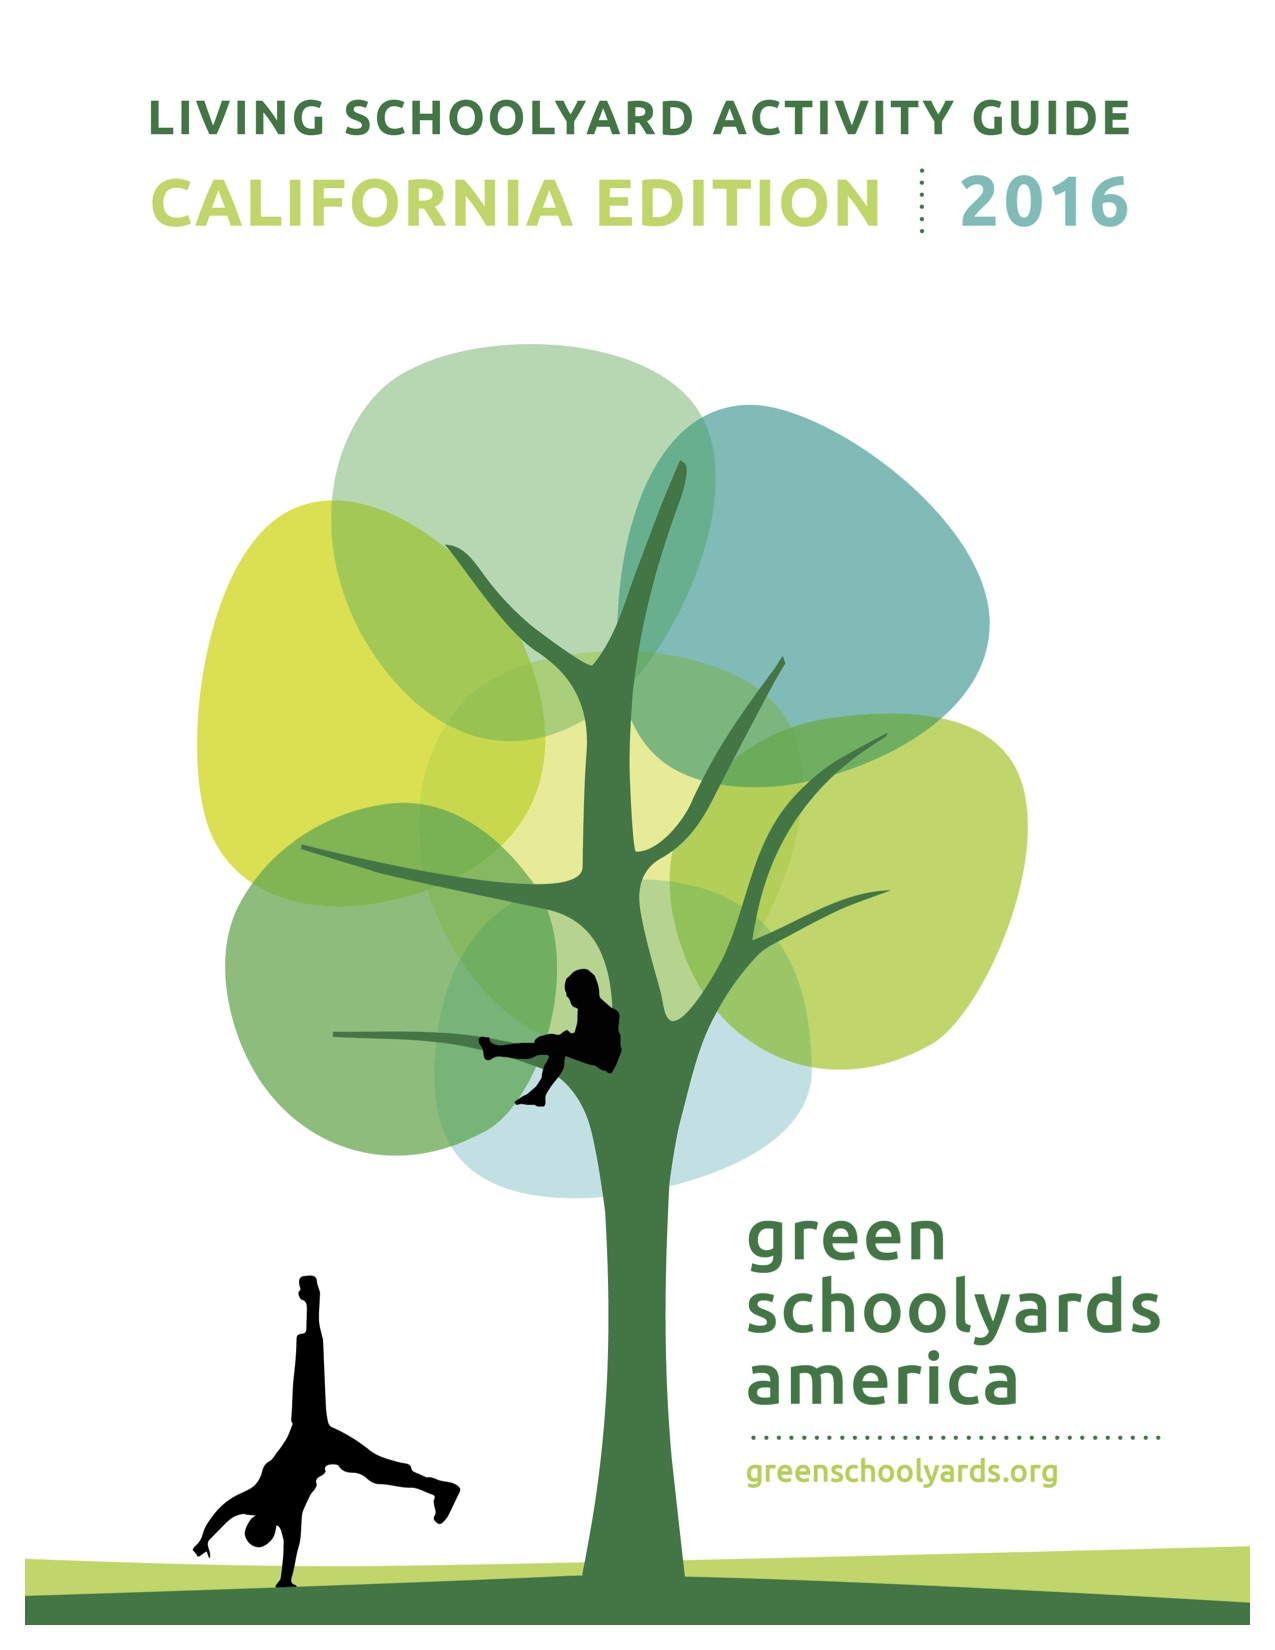 Educator/Community Guide for Living Schoolyards Created for California